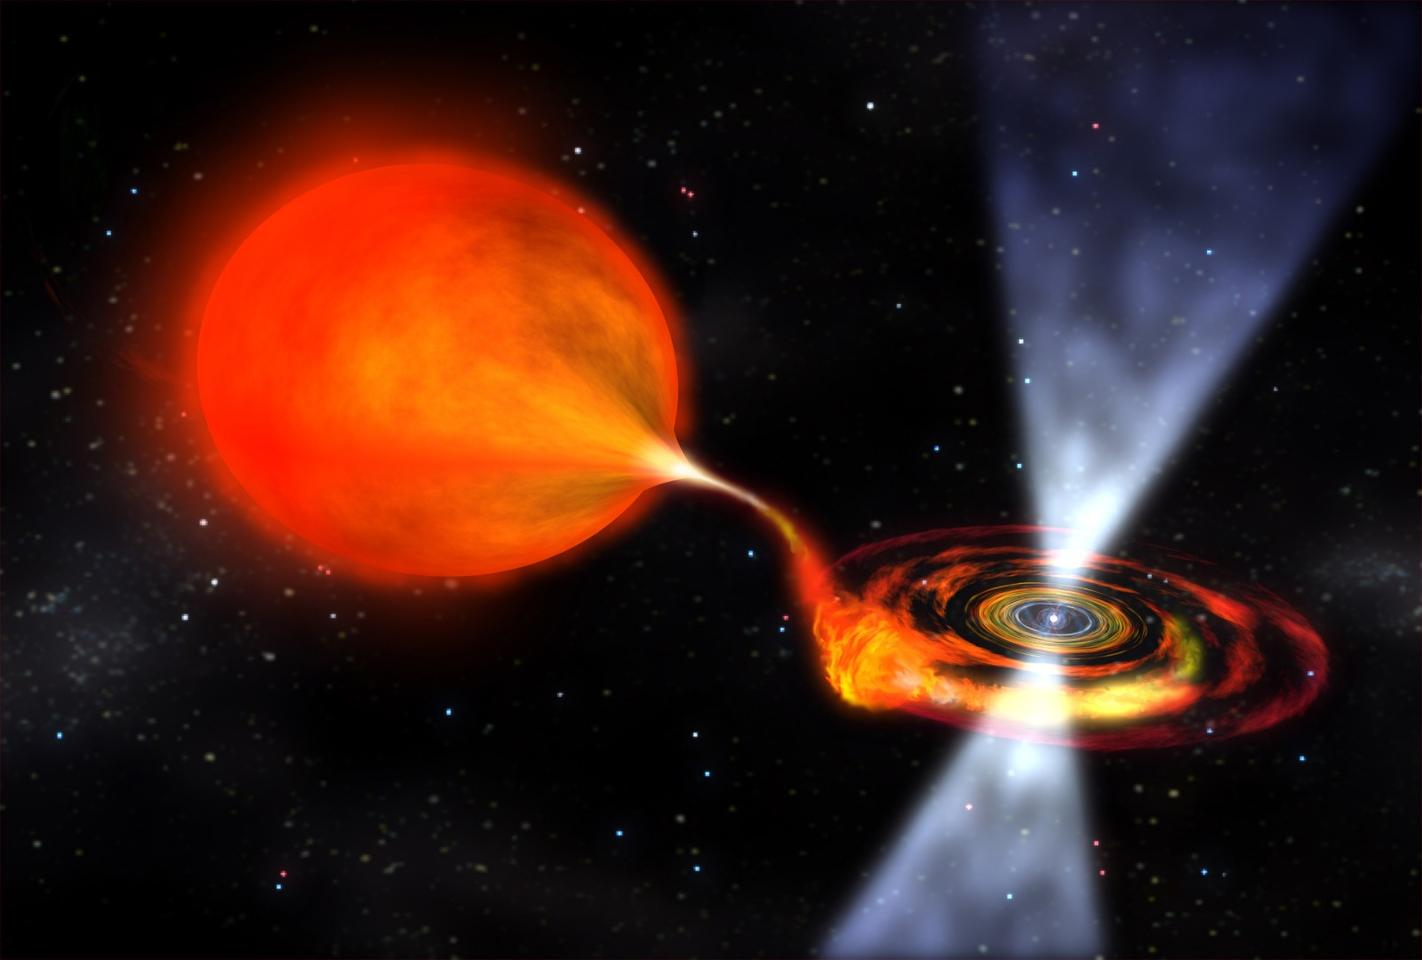 A fast-spinneutron star feeding off the matter from a red giant companion